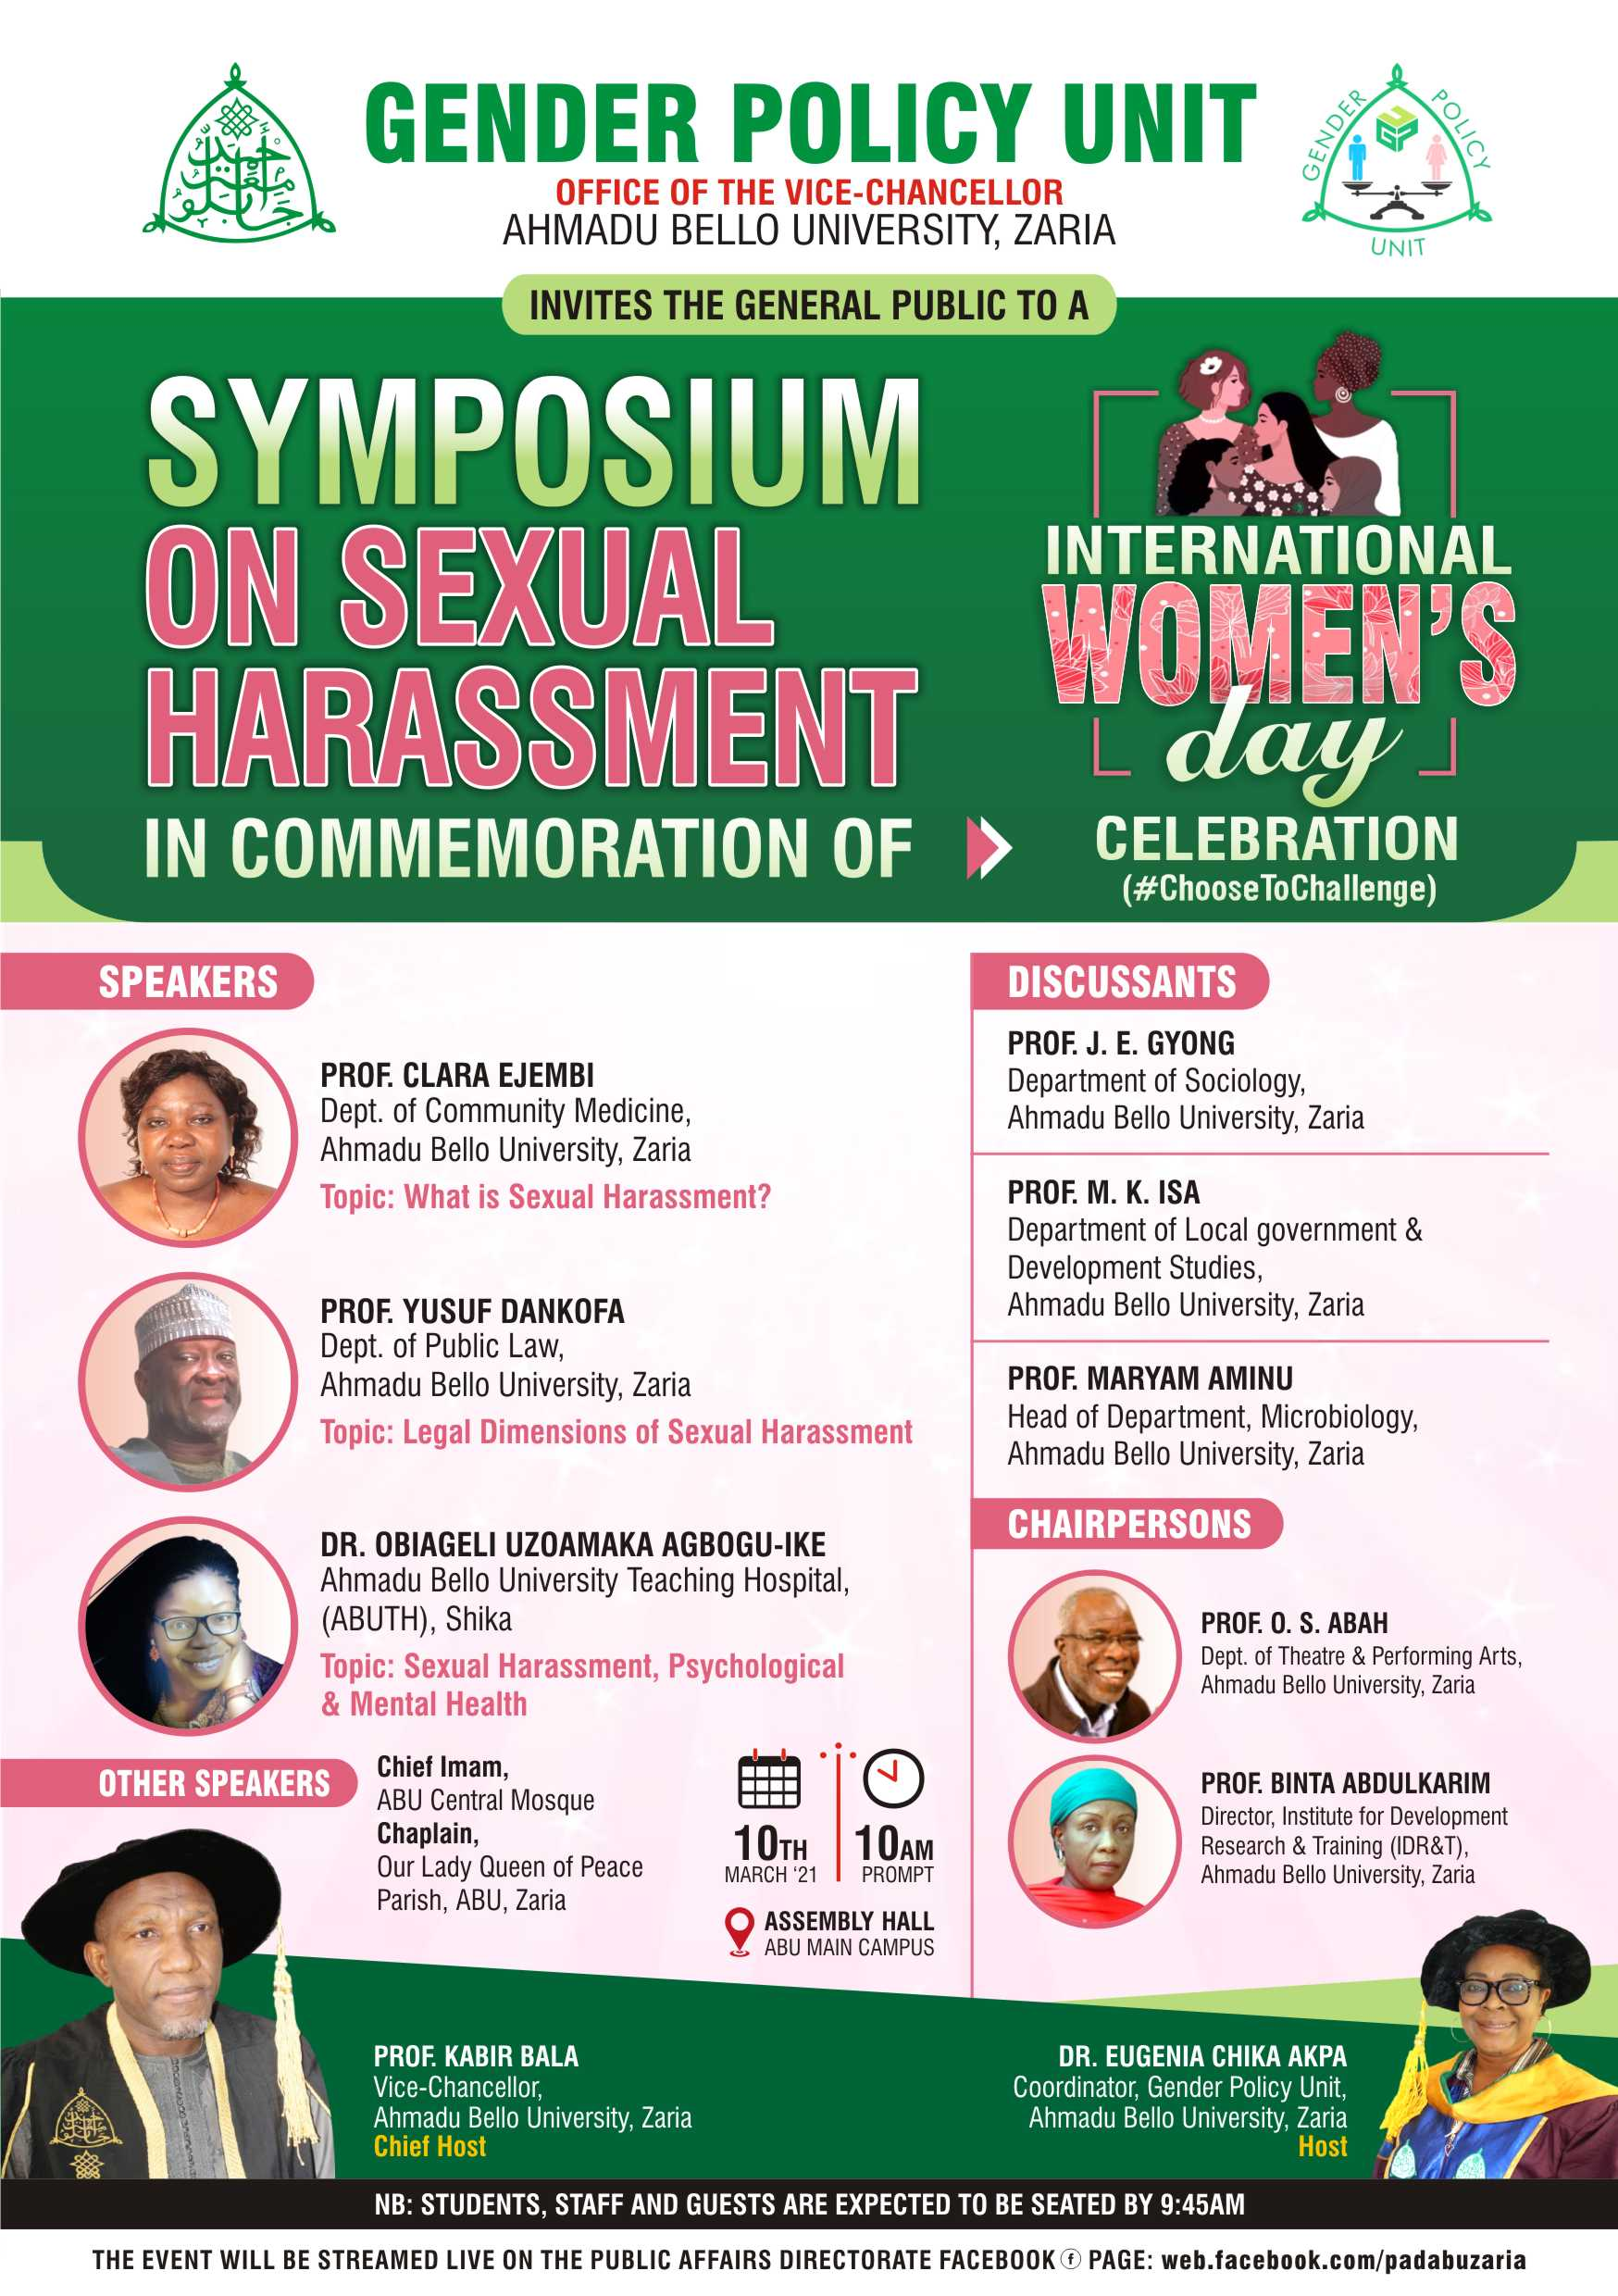 Gender Policy Unit invites the general public to a Symposium on sexual Harassment